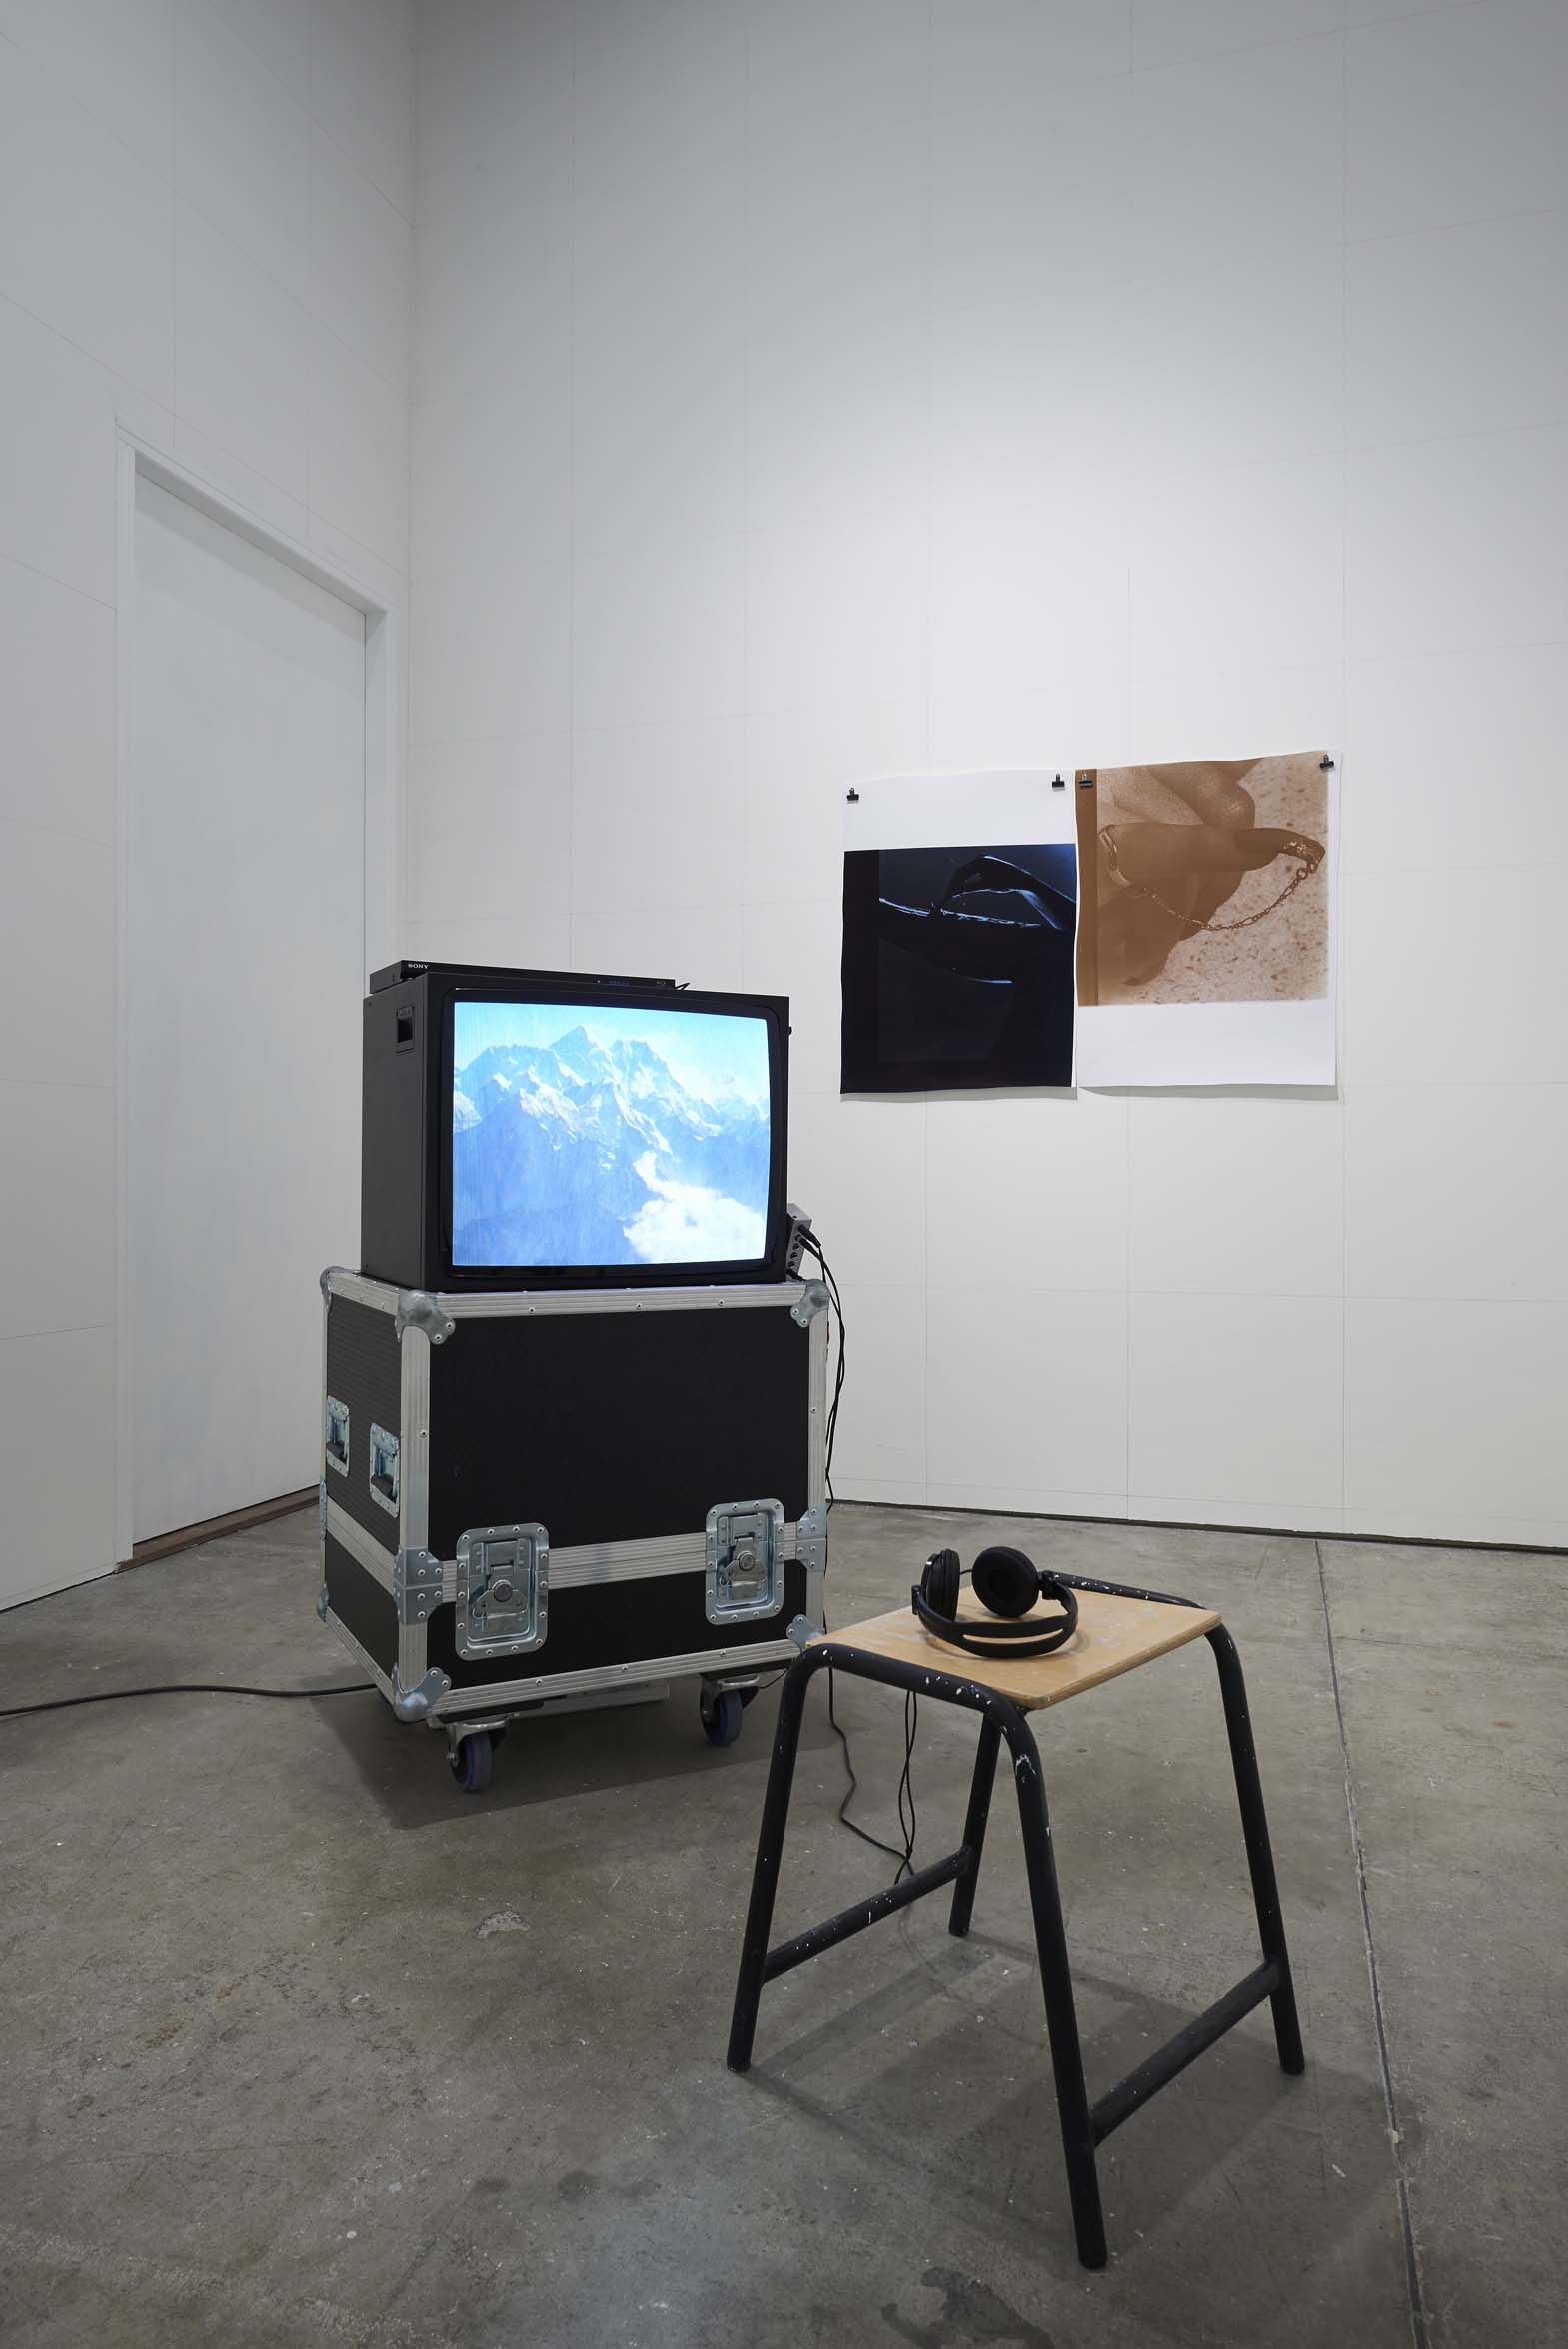 Installation at Mind Rhymes, Hidde van Seggelen Gallery, London, 2013